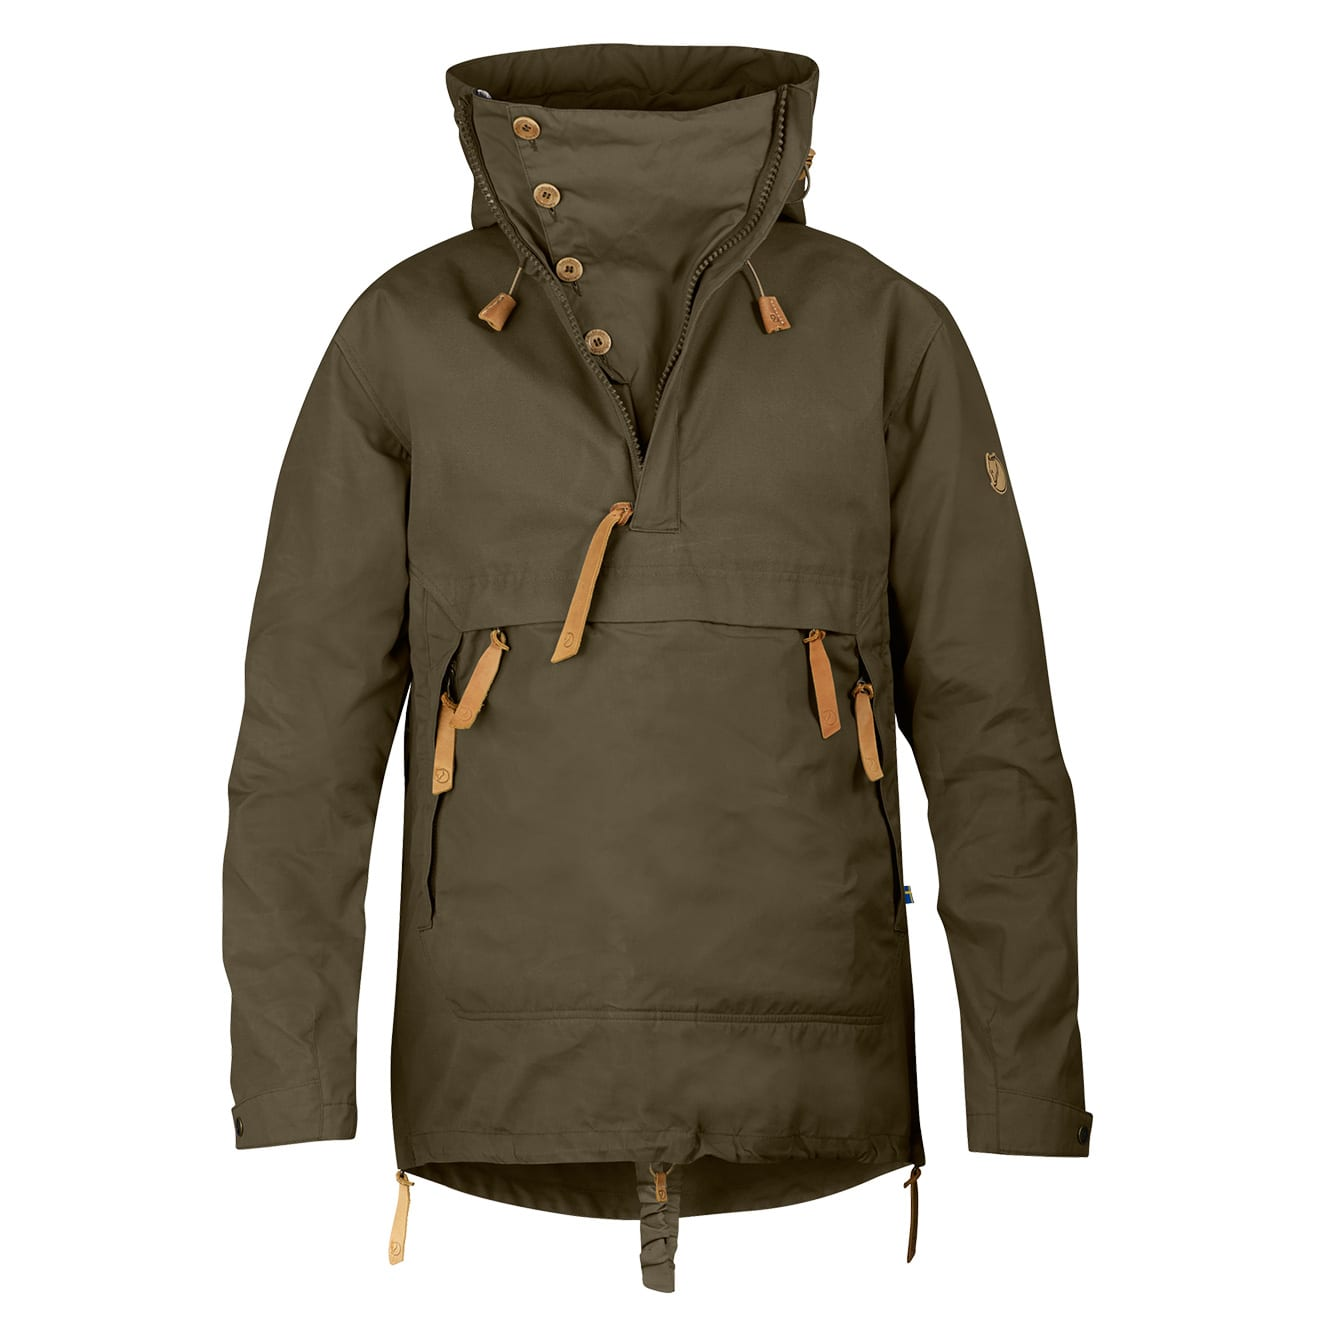 2542752be5 Fjallraven Anorak No. 8 Dark Olive - The Sporting Lodge